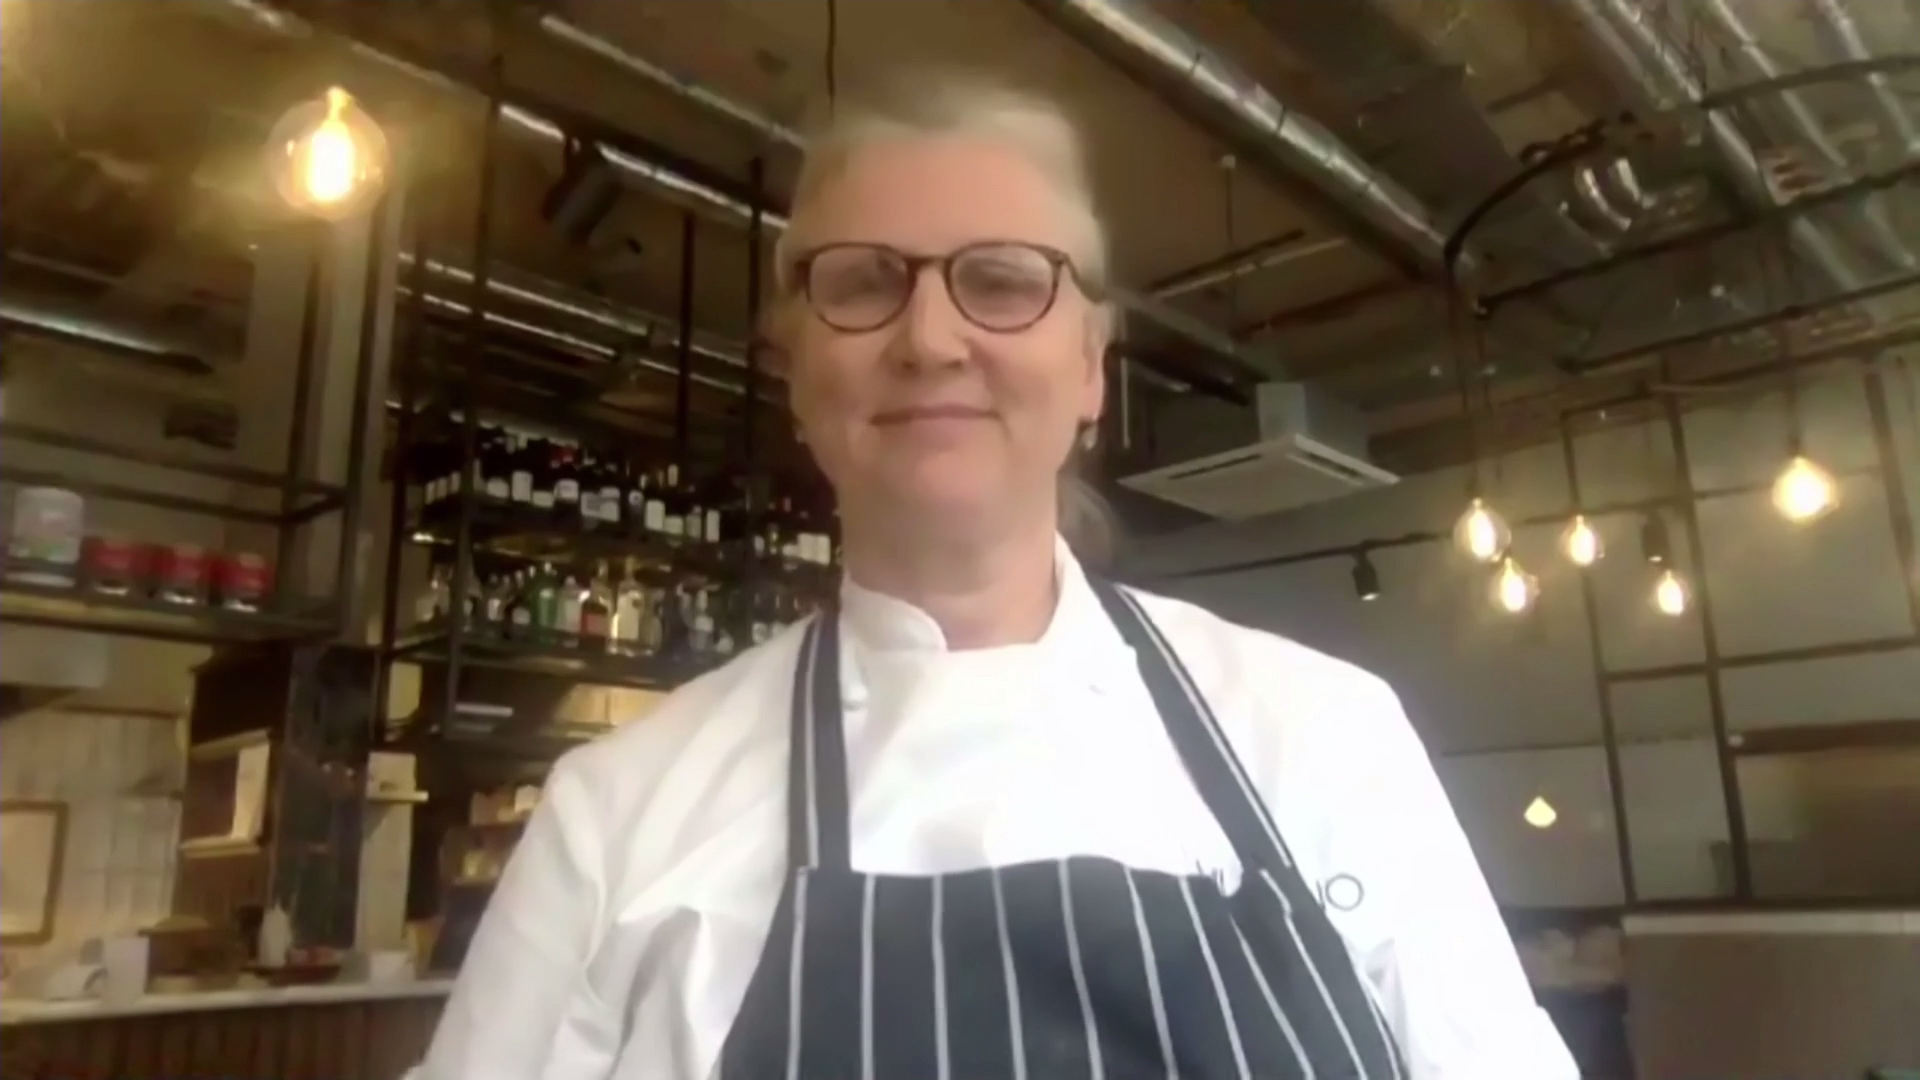 'For certain restaurants there has to be a stimulus package from the government' – chef Angela Hartnett - channel 4